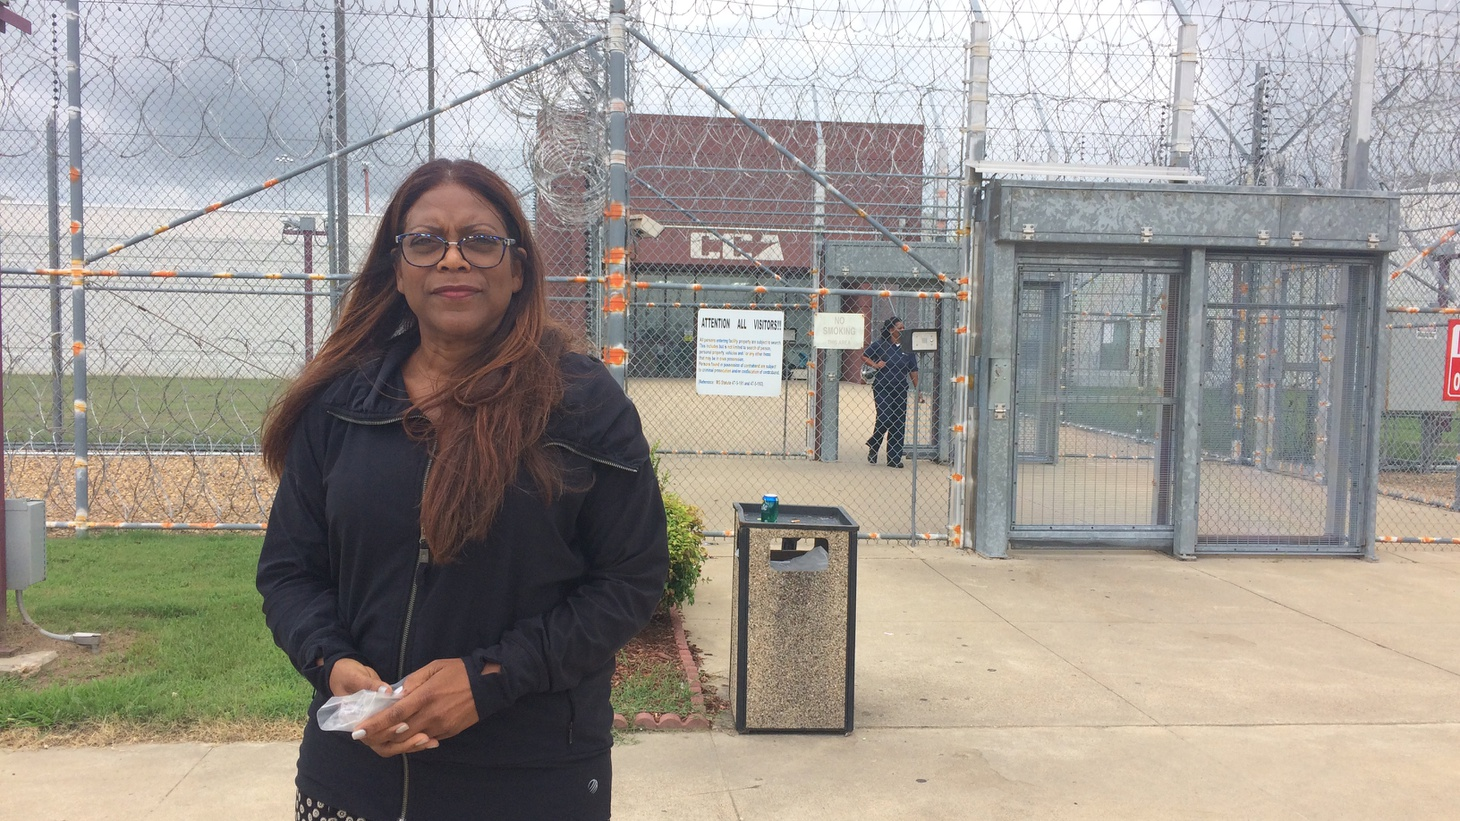 Daletha Hayden hasn't seen her son in almost a year. Her son, William Mitchell was sentenced to prison in California but is incarcerated in Mississippi. He's one of more than four thousand California prisoners in privately run out-of-state prisons. Hayden recently made the long trip out to visit him.